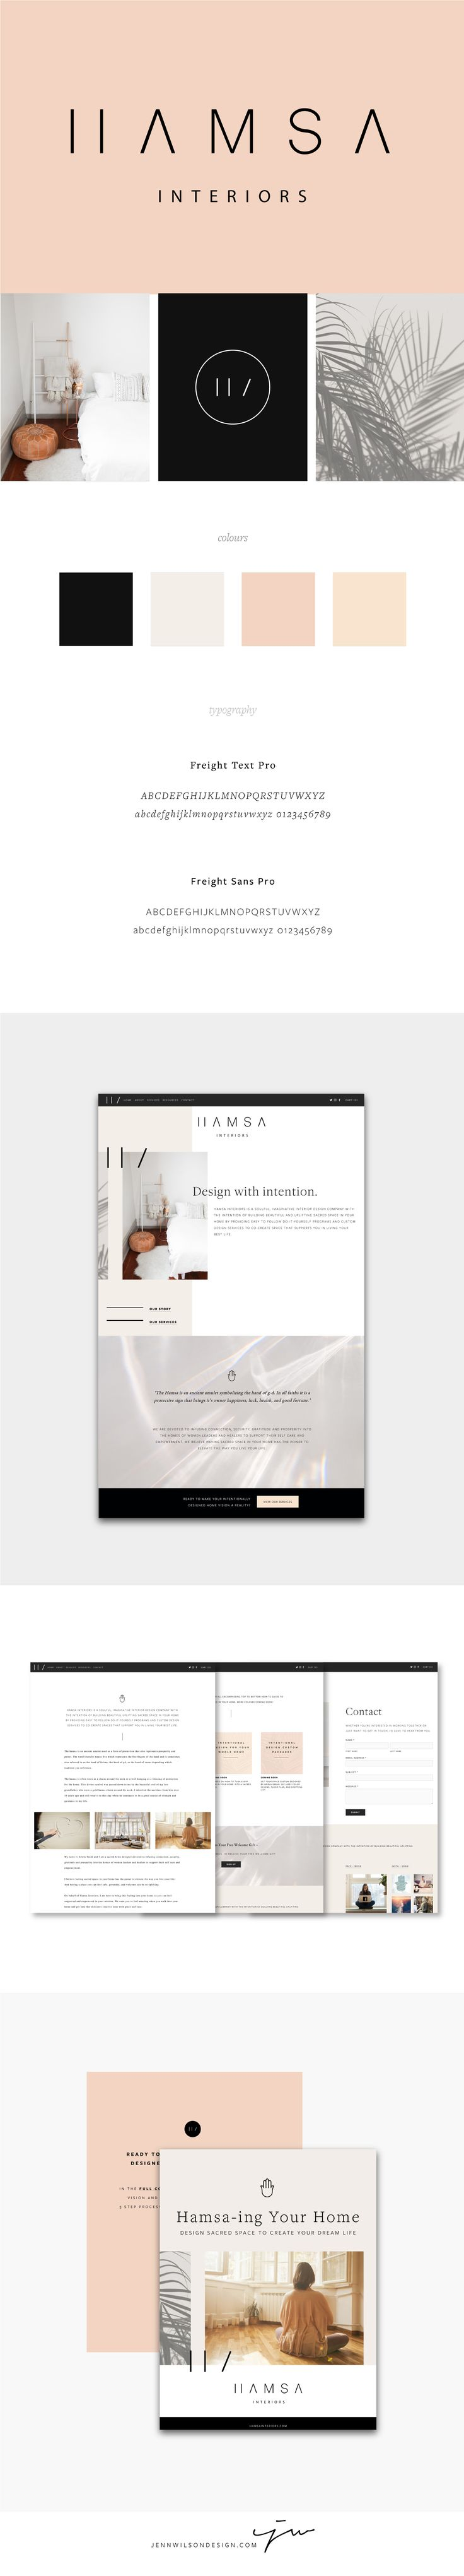 Brand Identity And Website Design For Hamsa Interiors // Clean, Minimalist  Design //